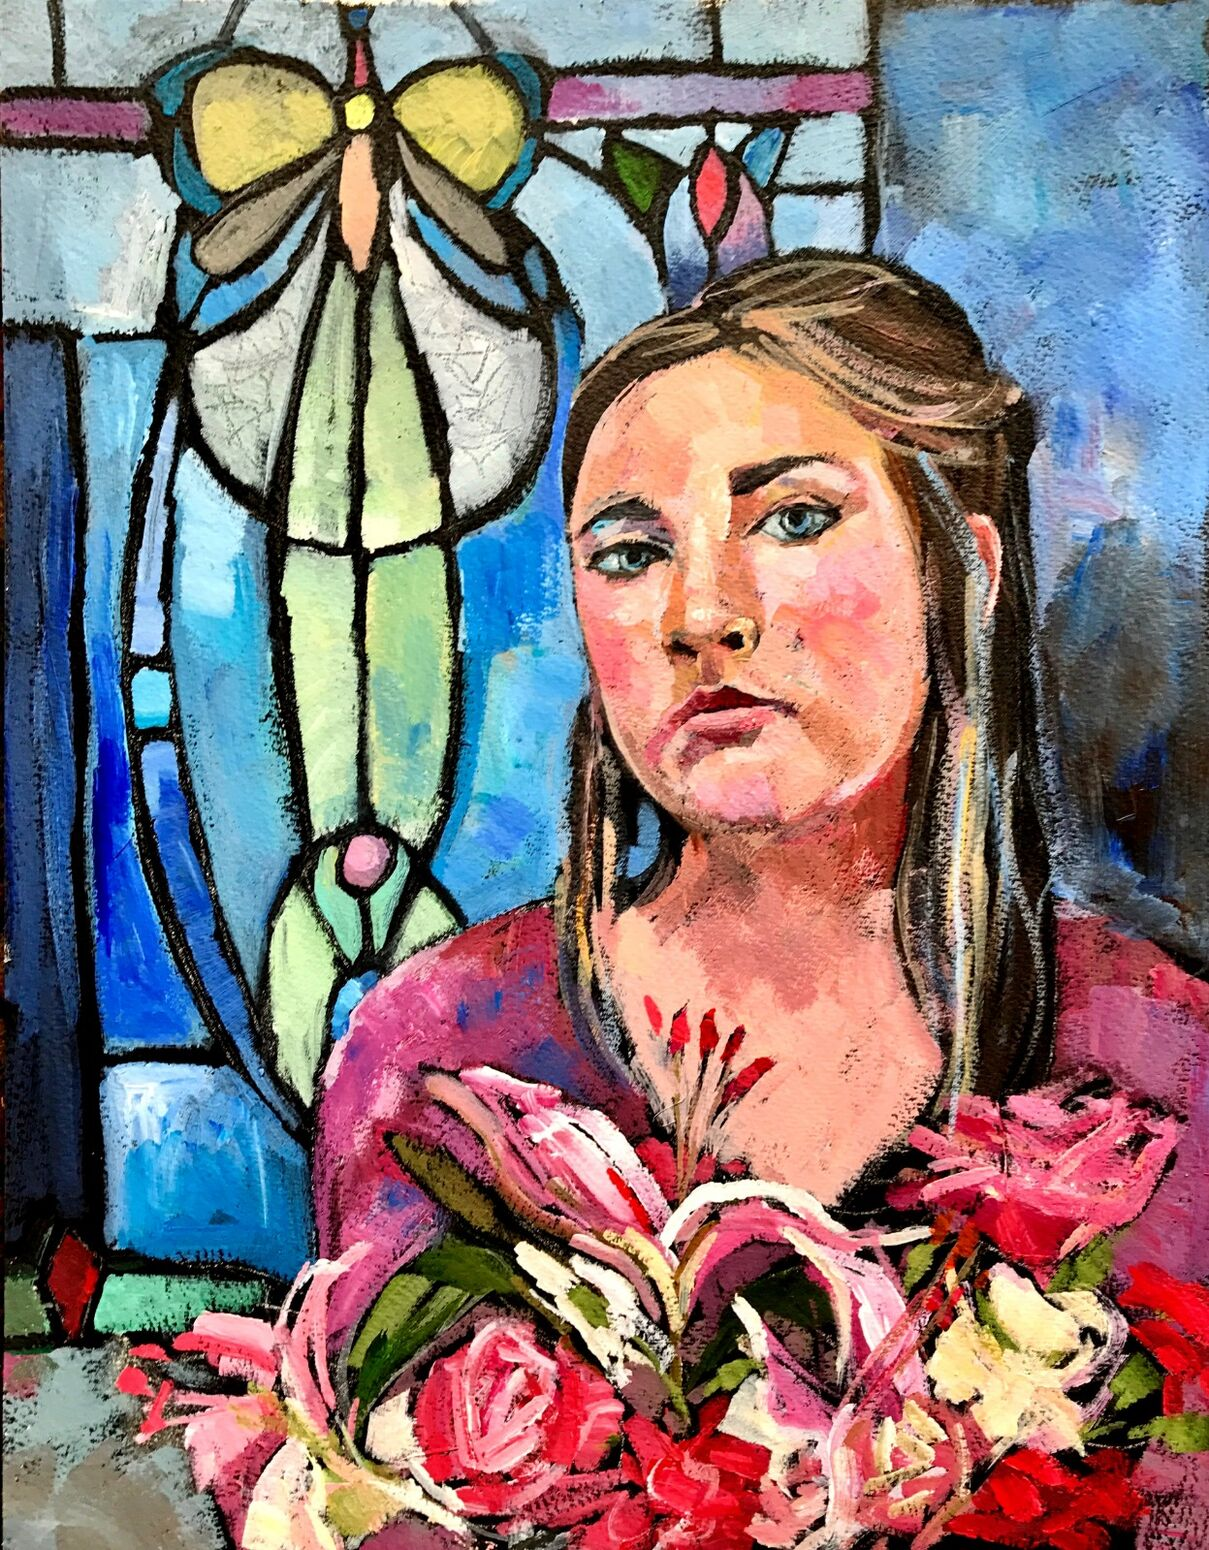 Girl in front of stainedglass window